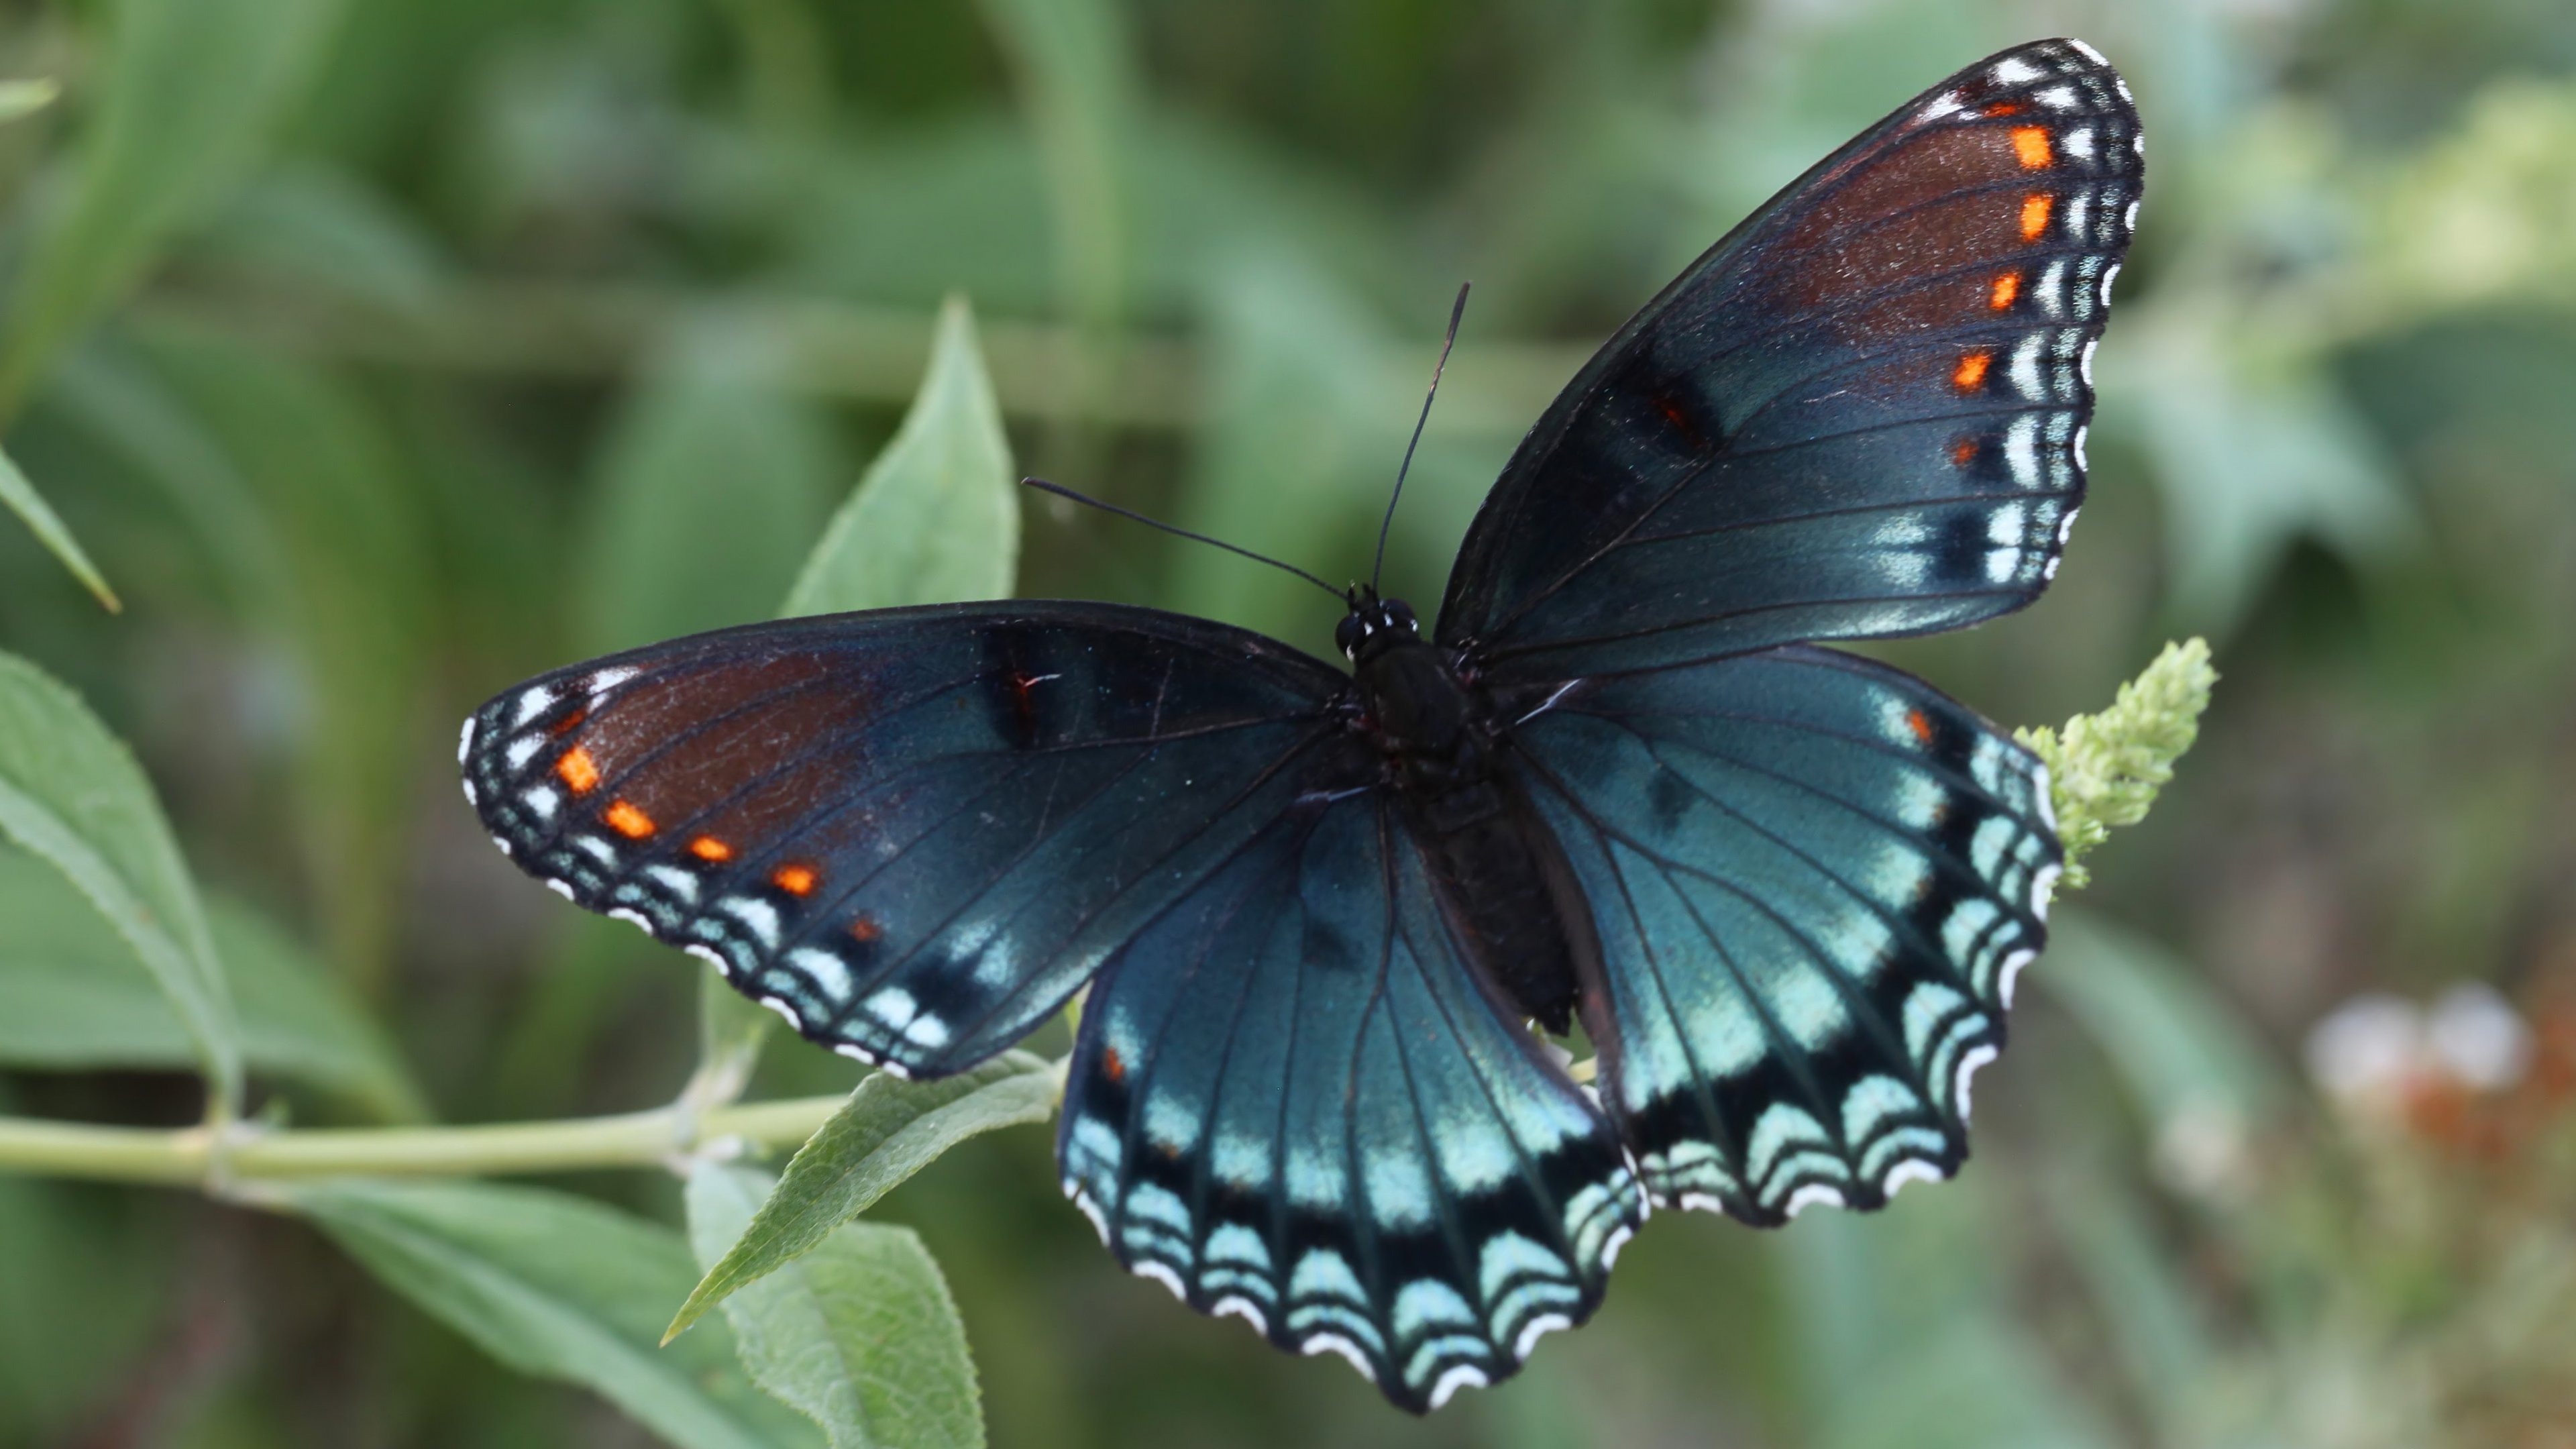 Red Spotted Purple Butterfly Wallpaper   Mobile   Desktop Background Red Spotted Purple Butterfly